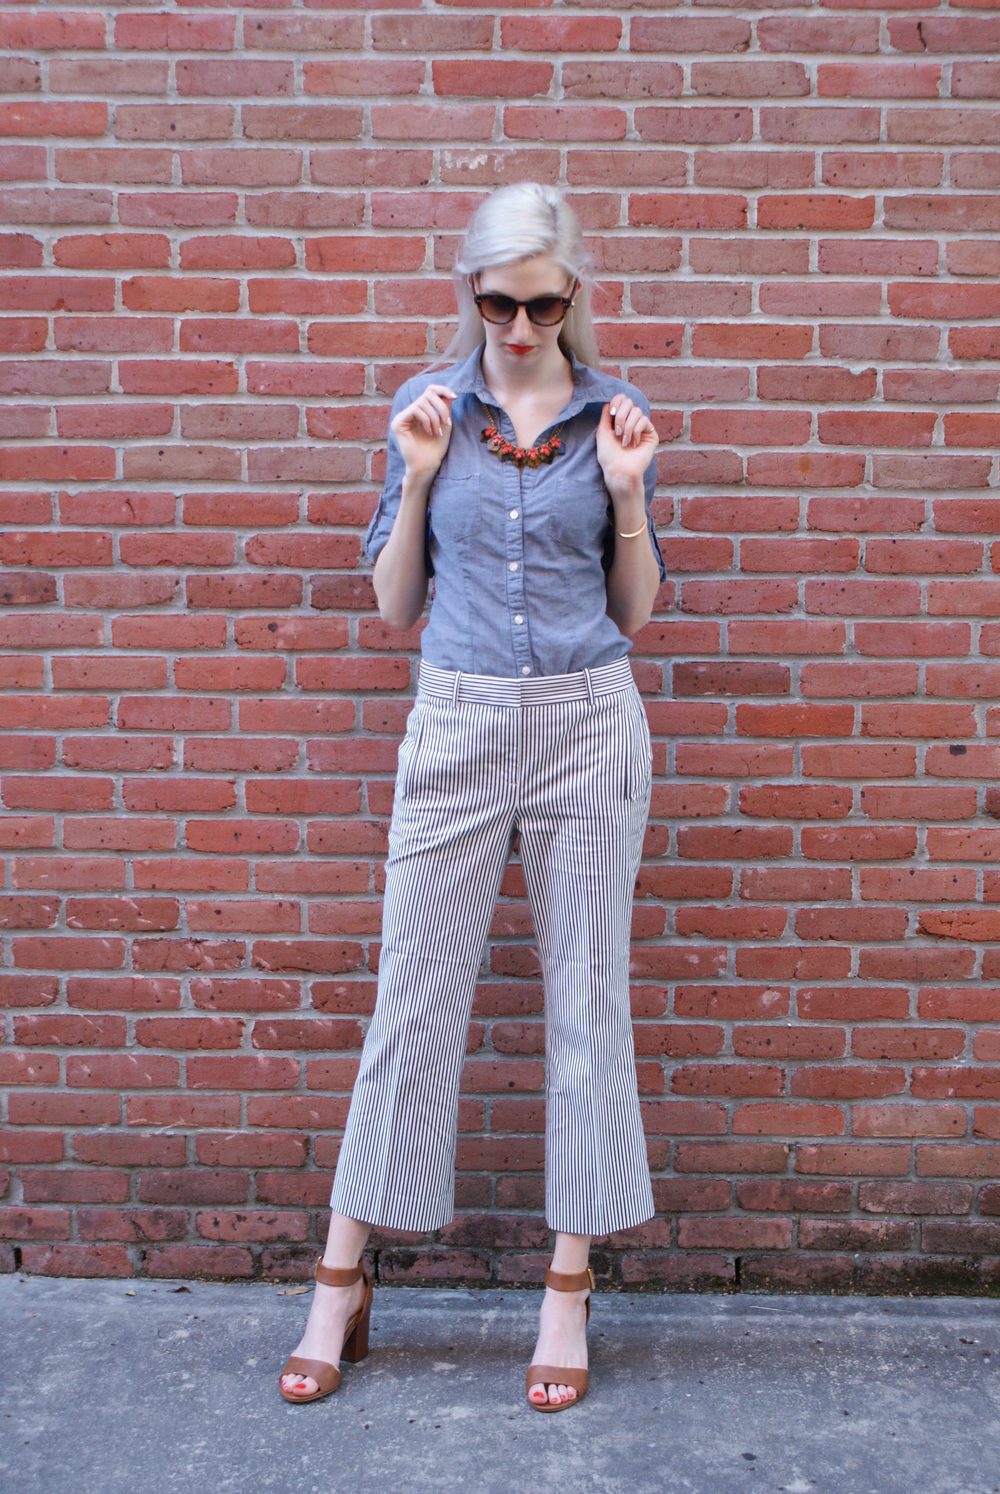 J.Crew seersucker teddie pant, chambray button down, J.Crew tortoiseshell necklace, brown block heeled sandals